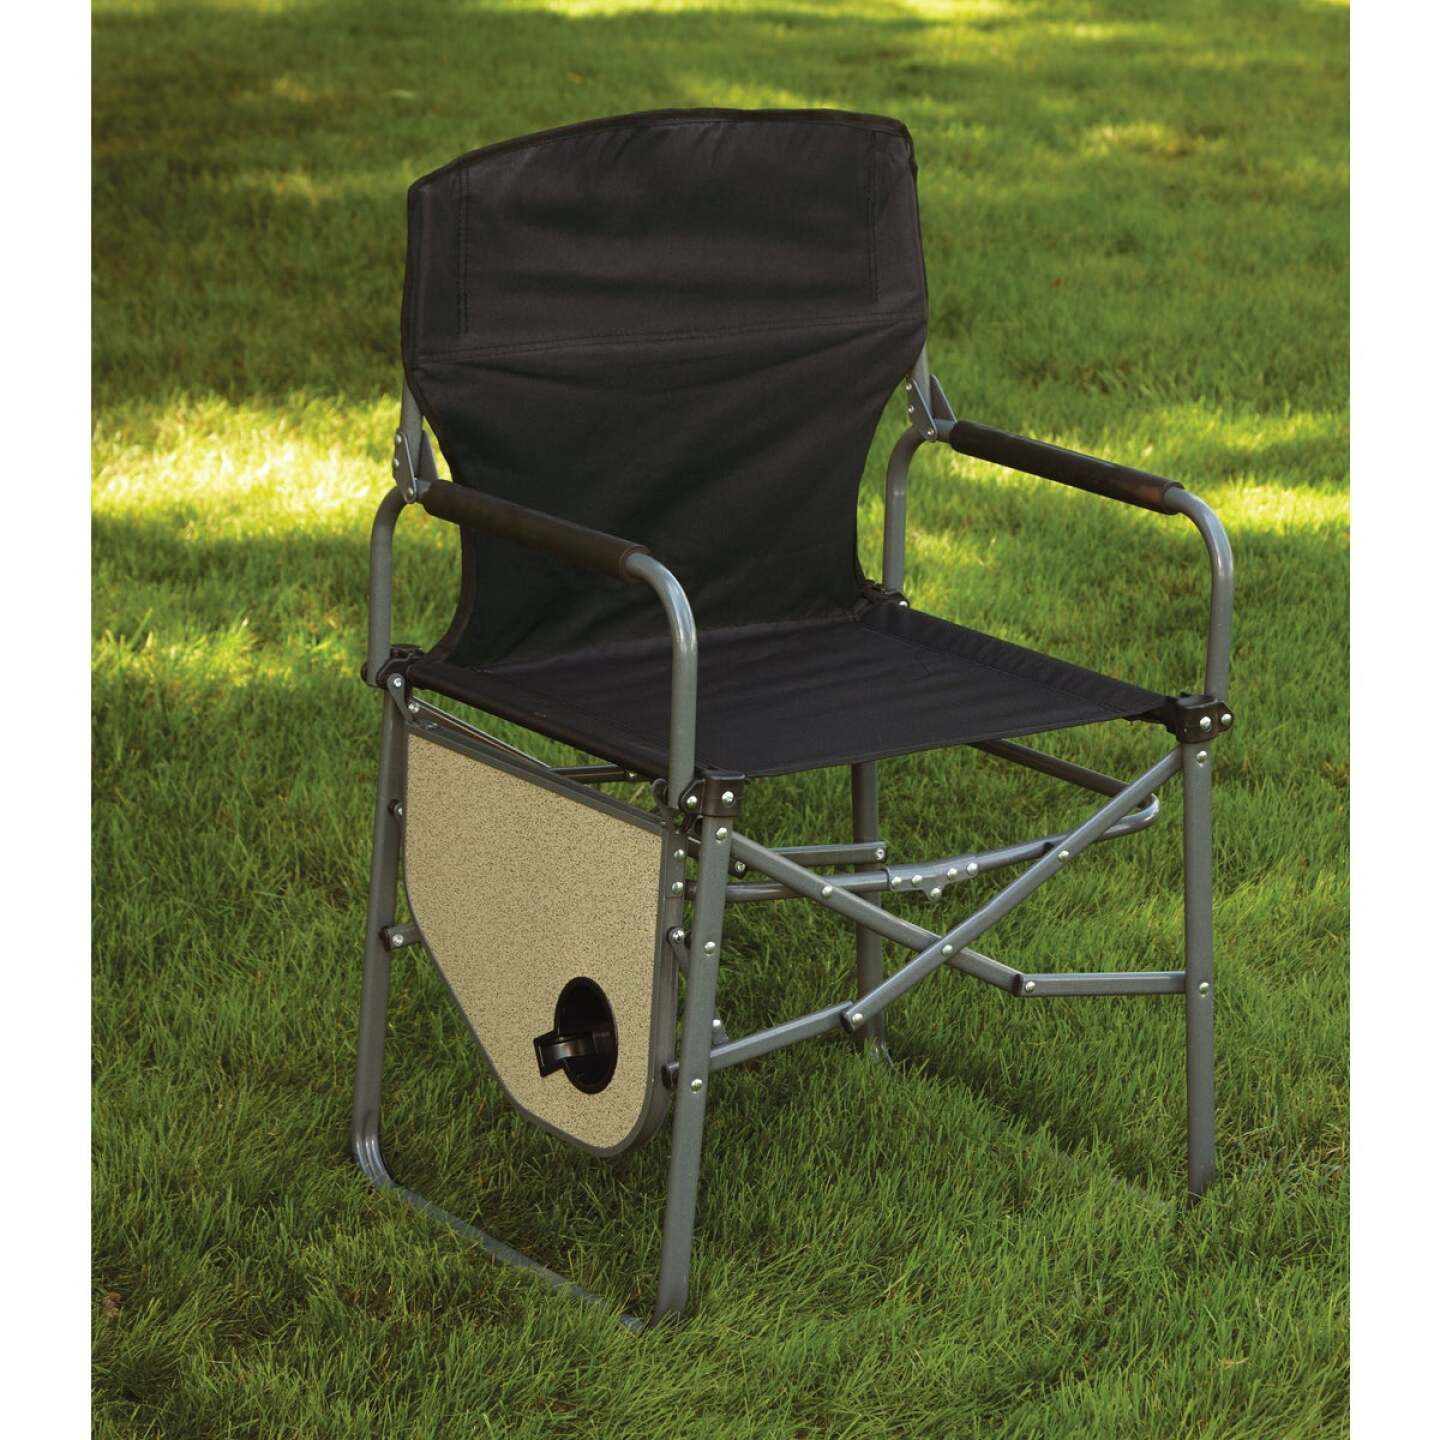 Outdoor Expressions Black Polyester Director Camp Folding Chair with Side Table Image 3